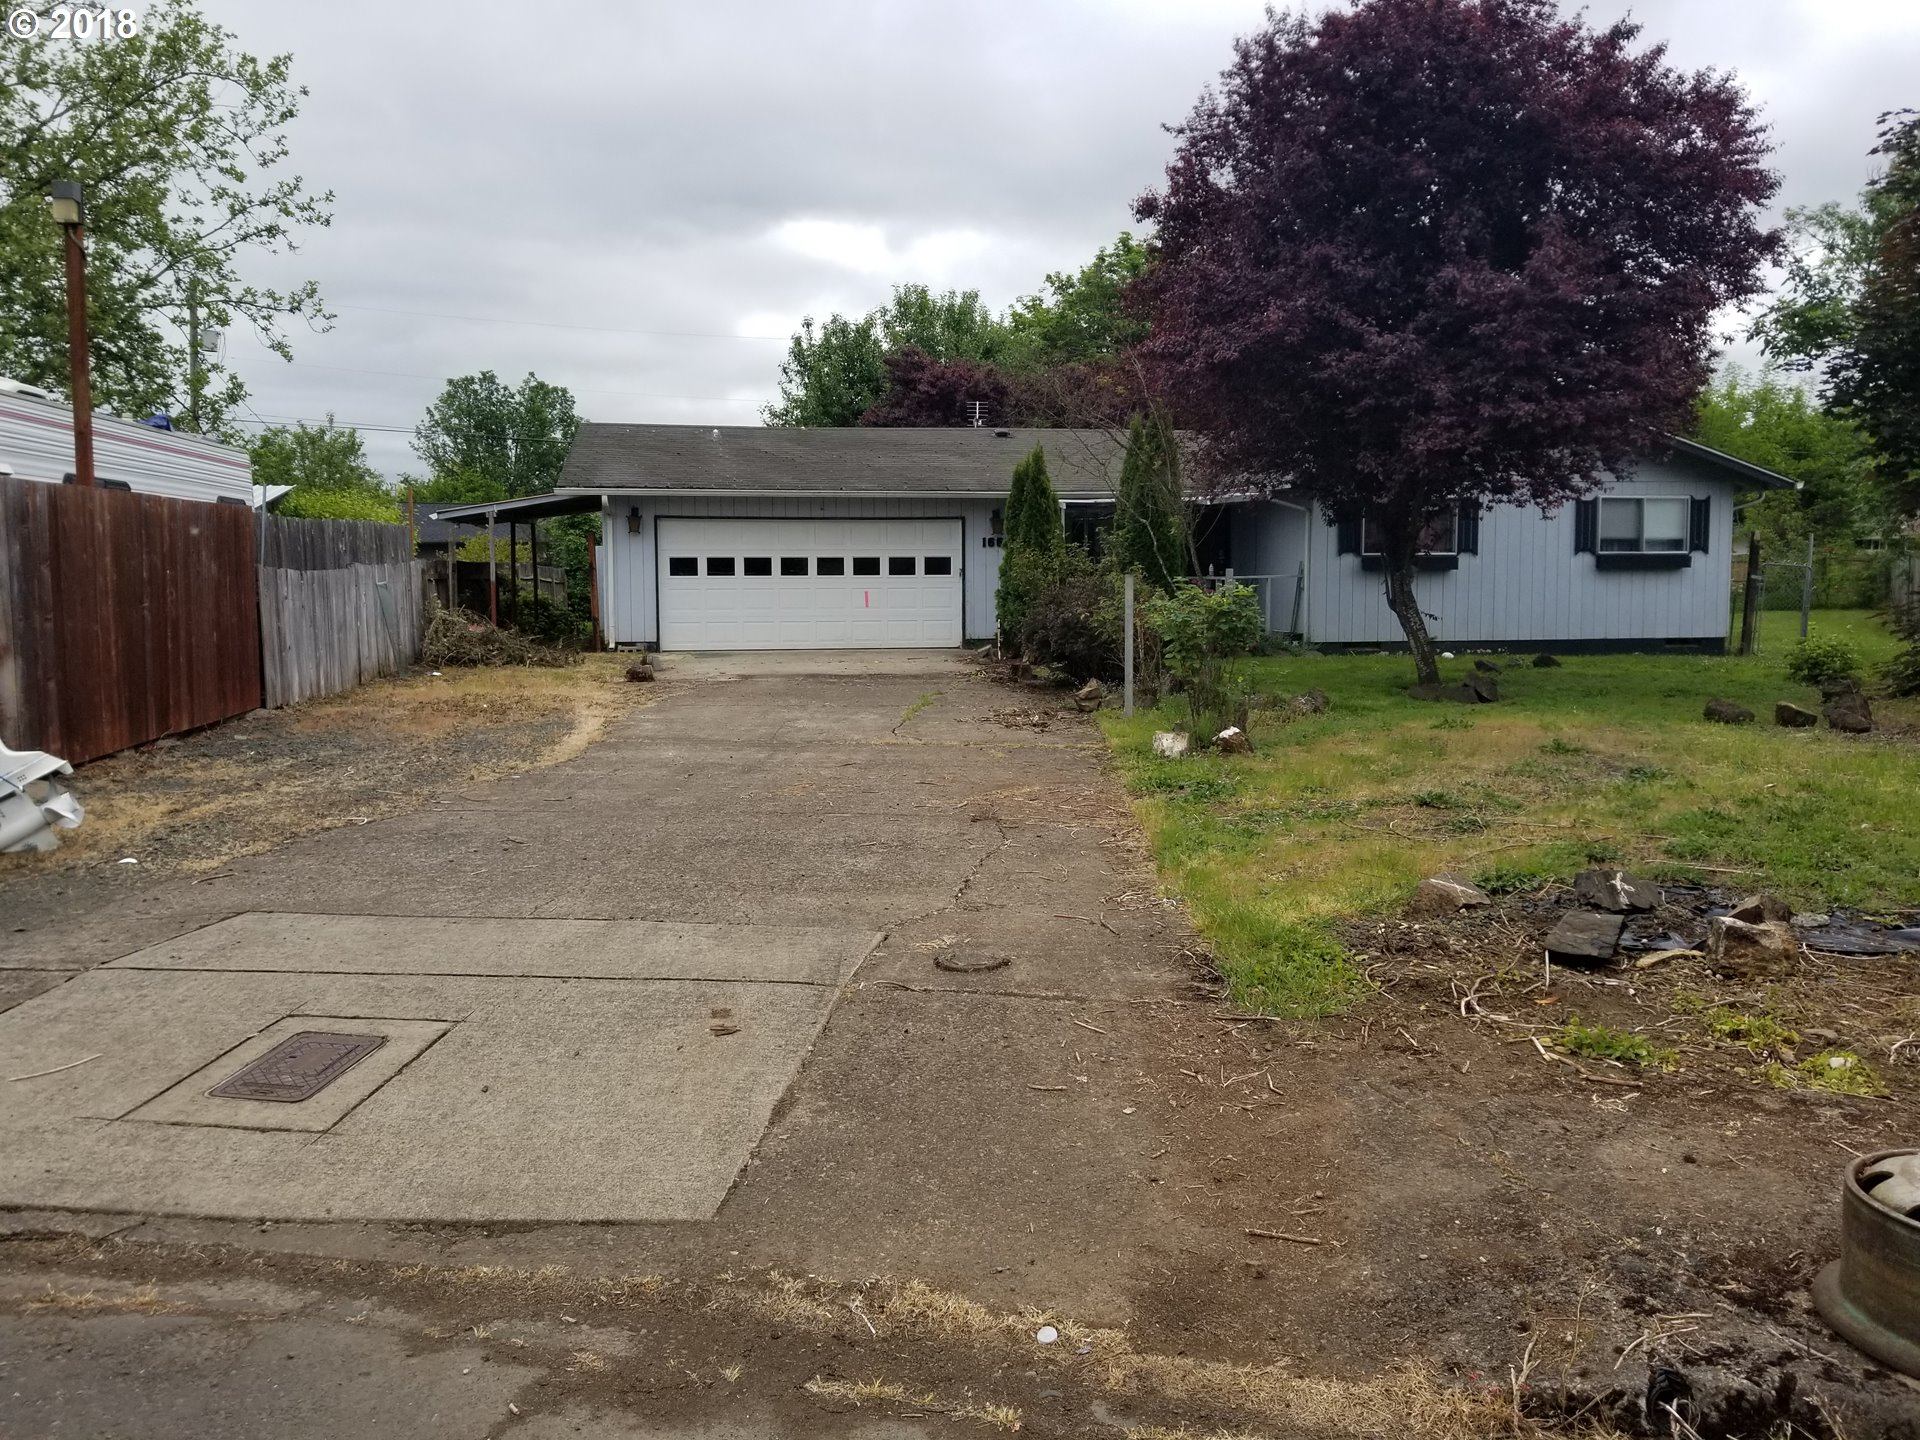 1665 BRYANT CT Cottage Grove, OR 97424 18565442